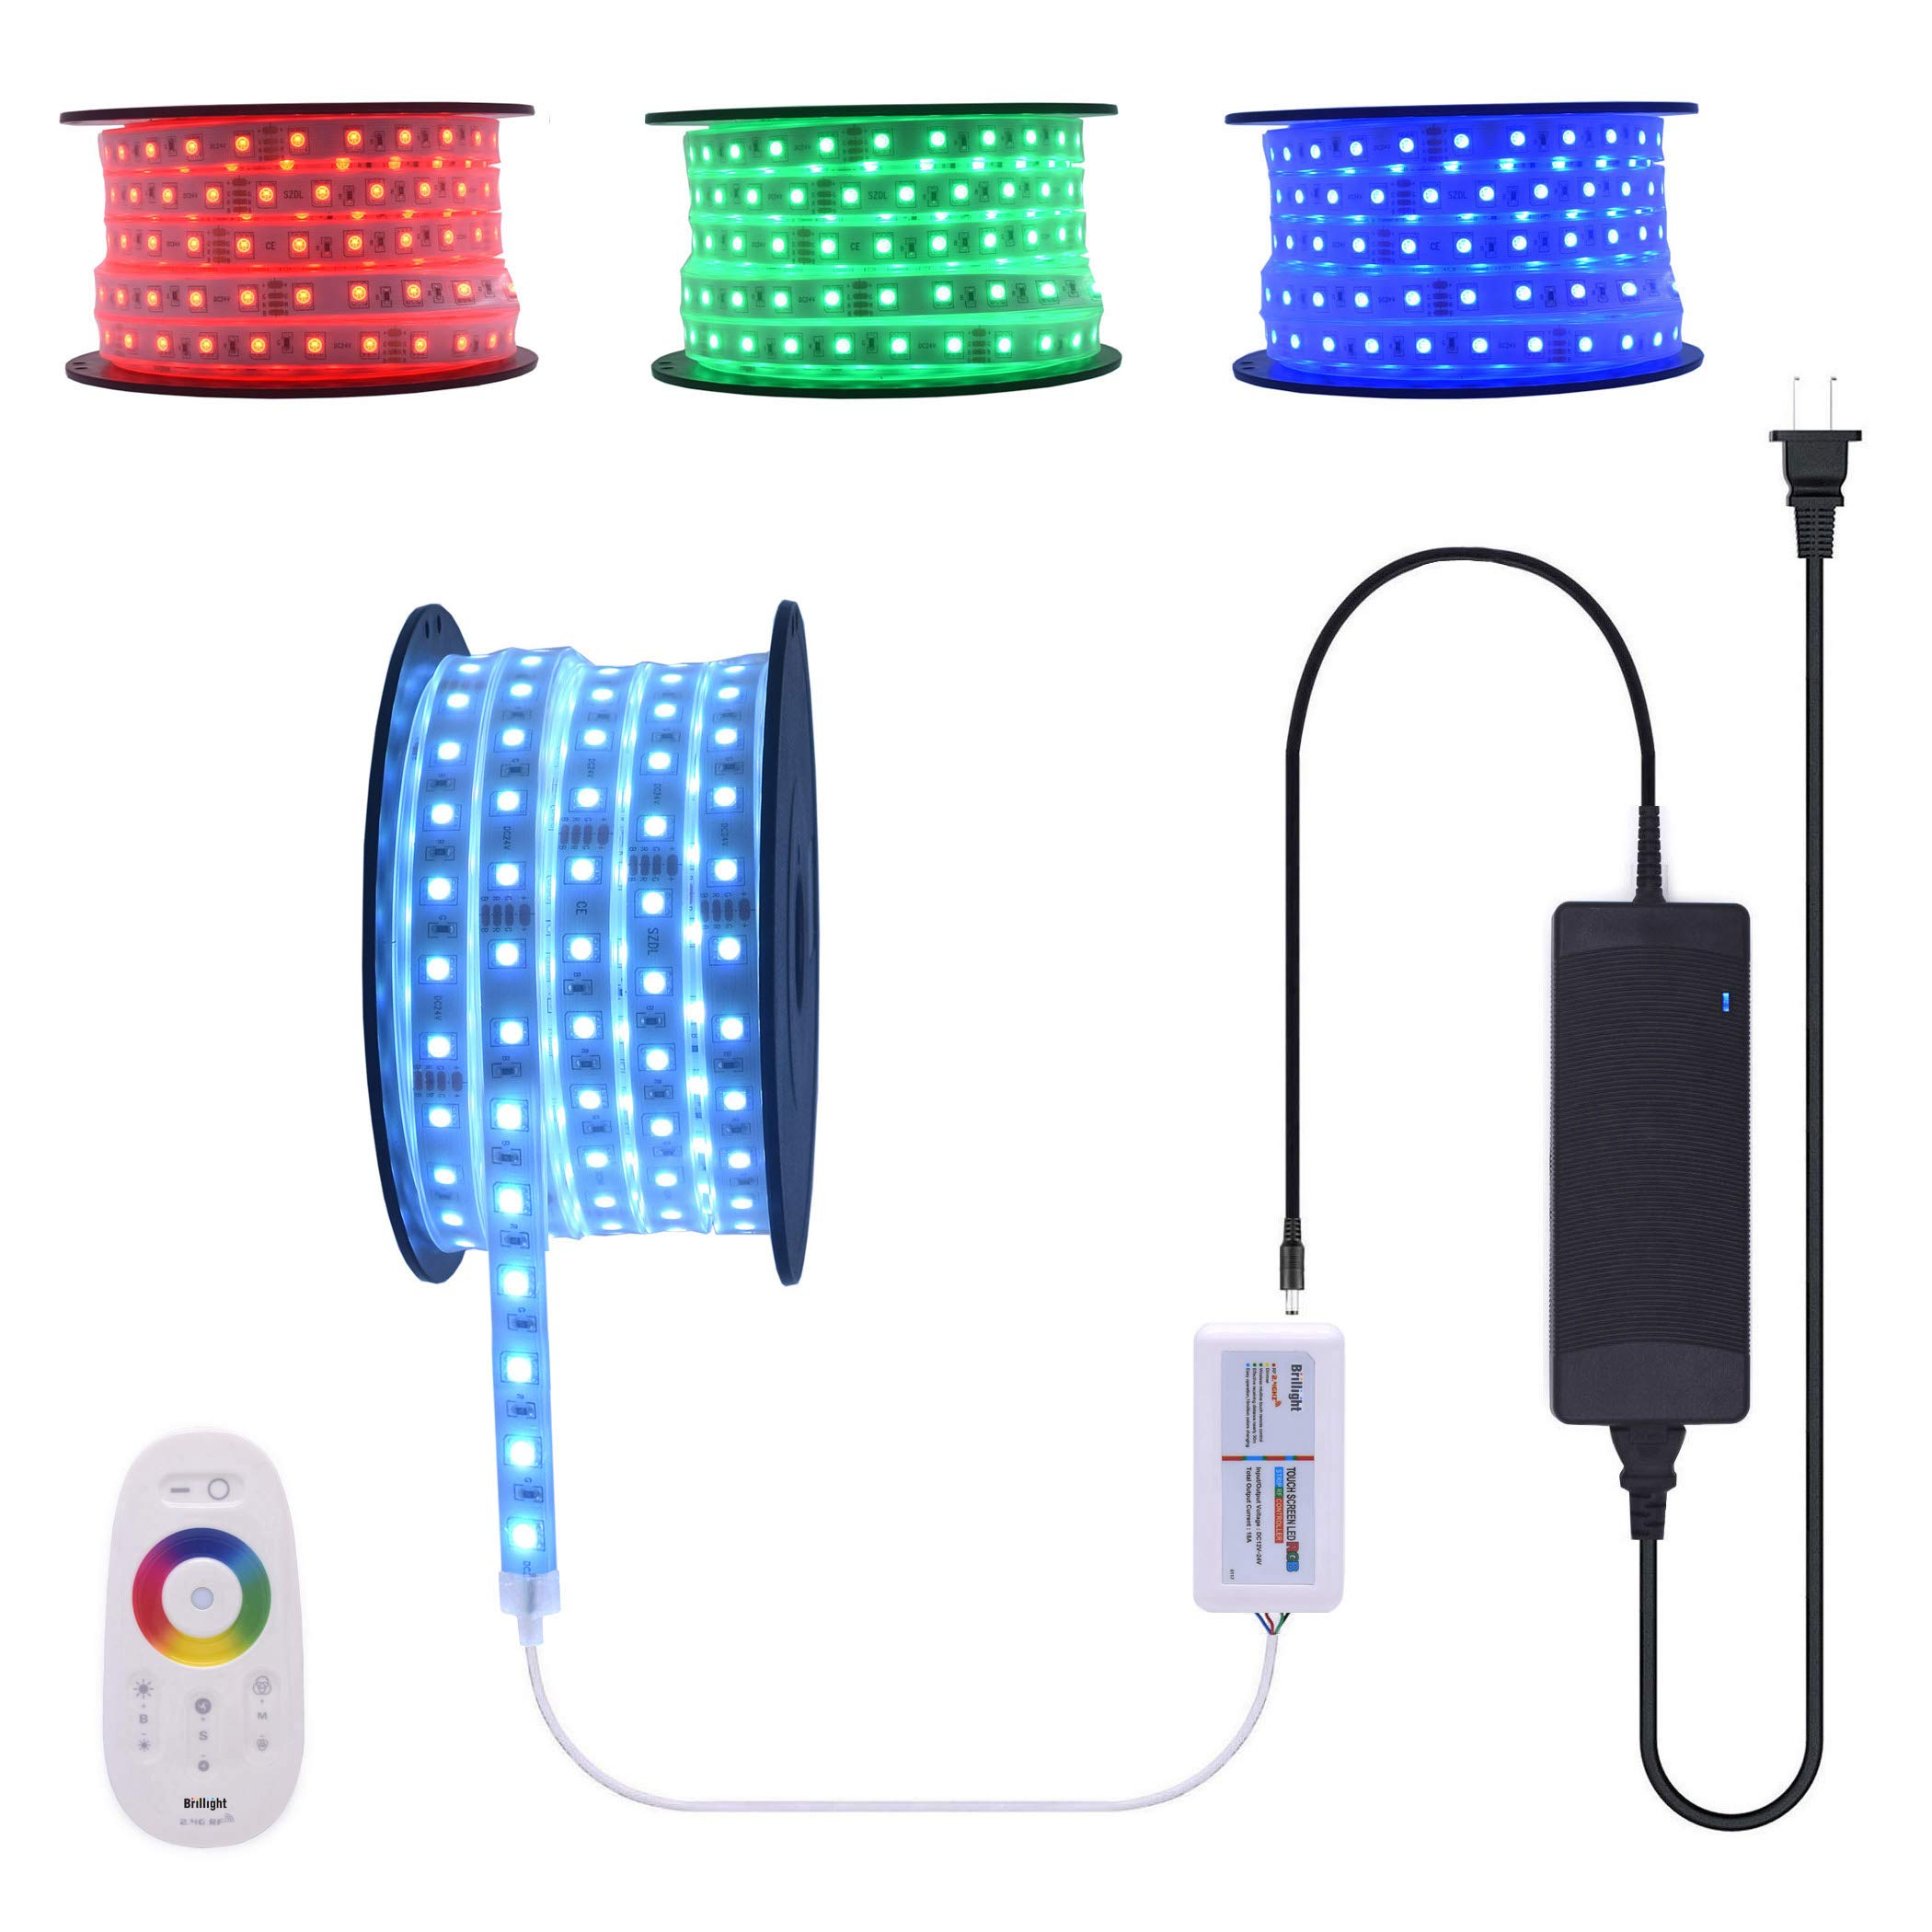 100 Ft 24V RGB LED Strip Light Super Bright Continuous Long Runs Waterproof Rope Light Kit with Wireless RF Touch Colors Changing Controller and Power Supply